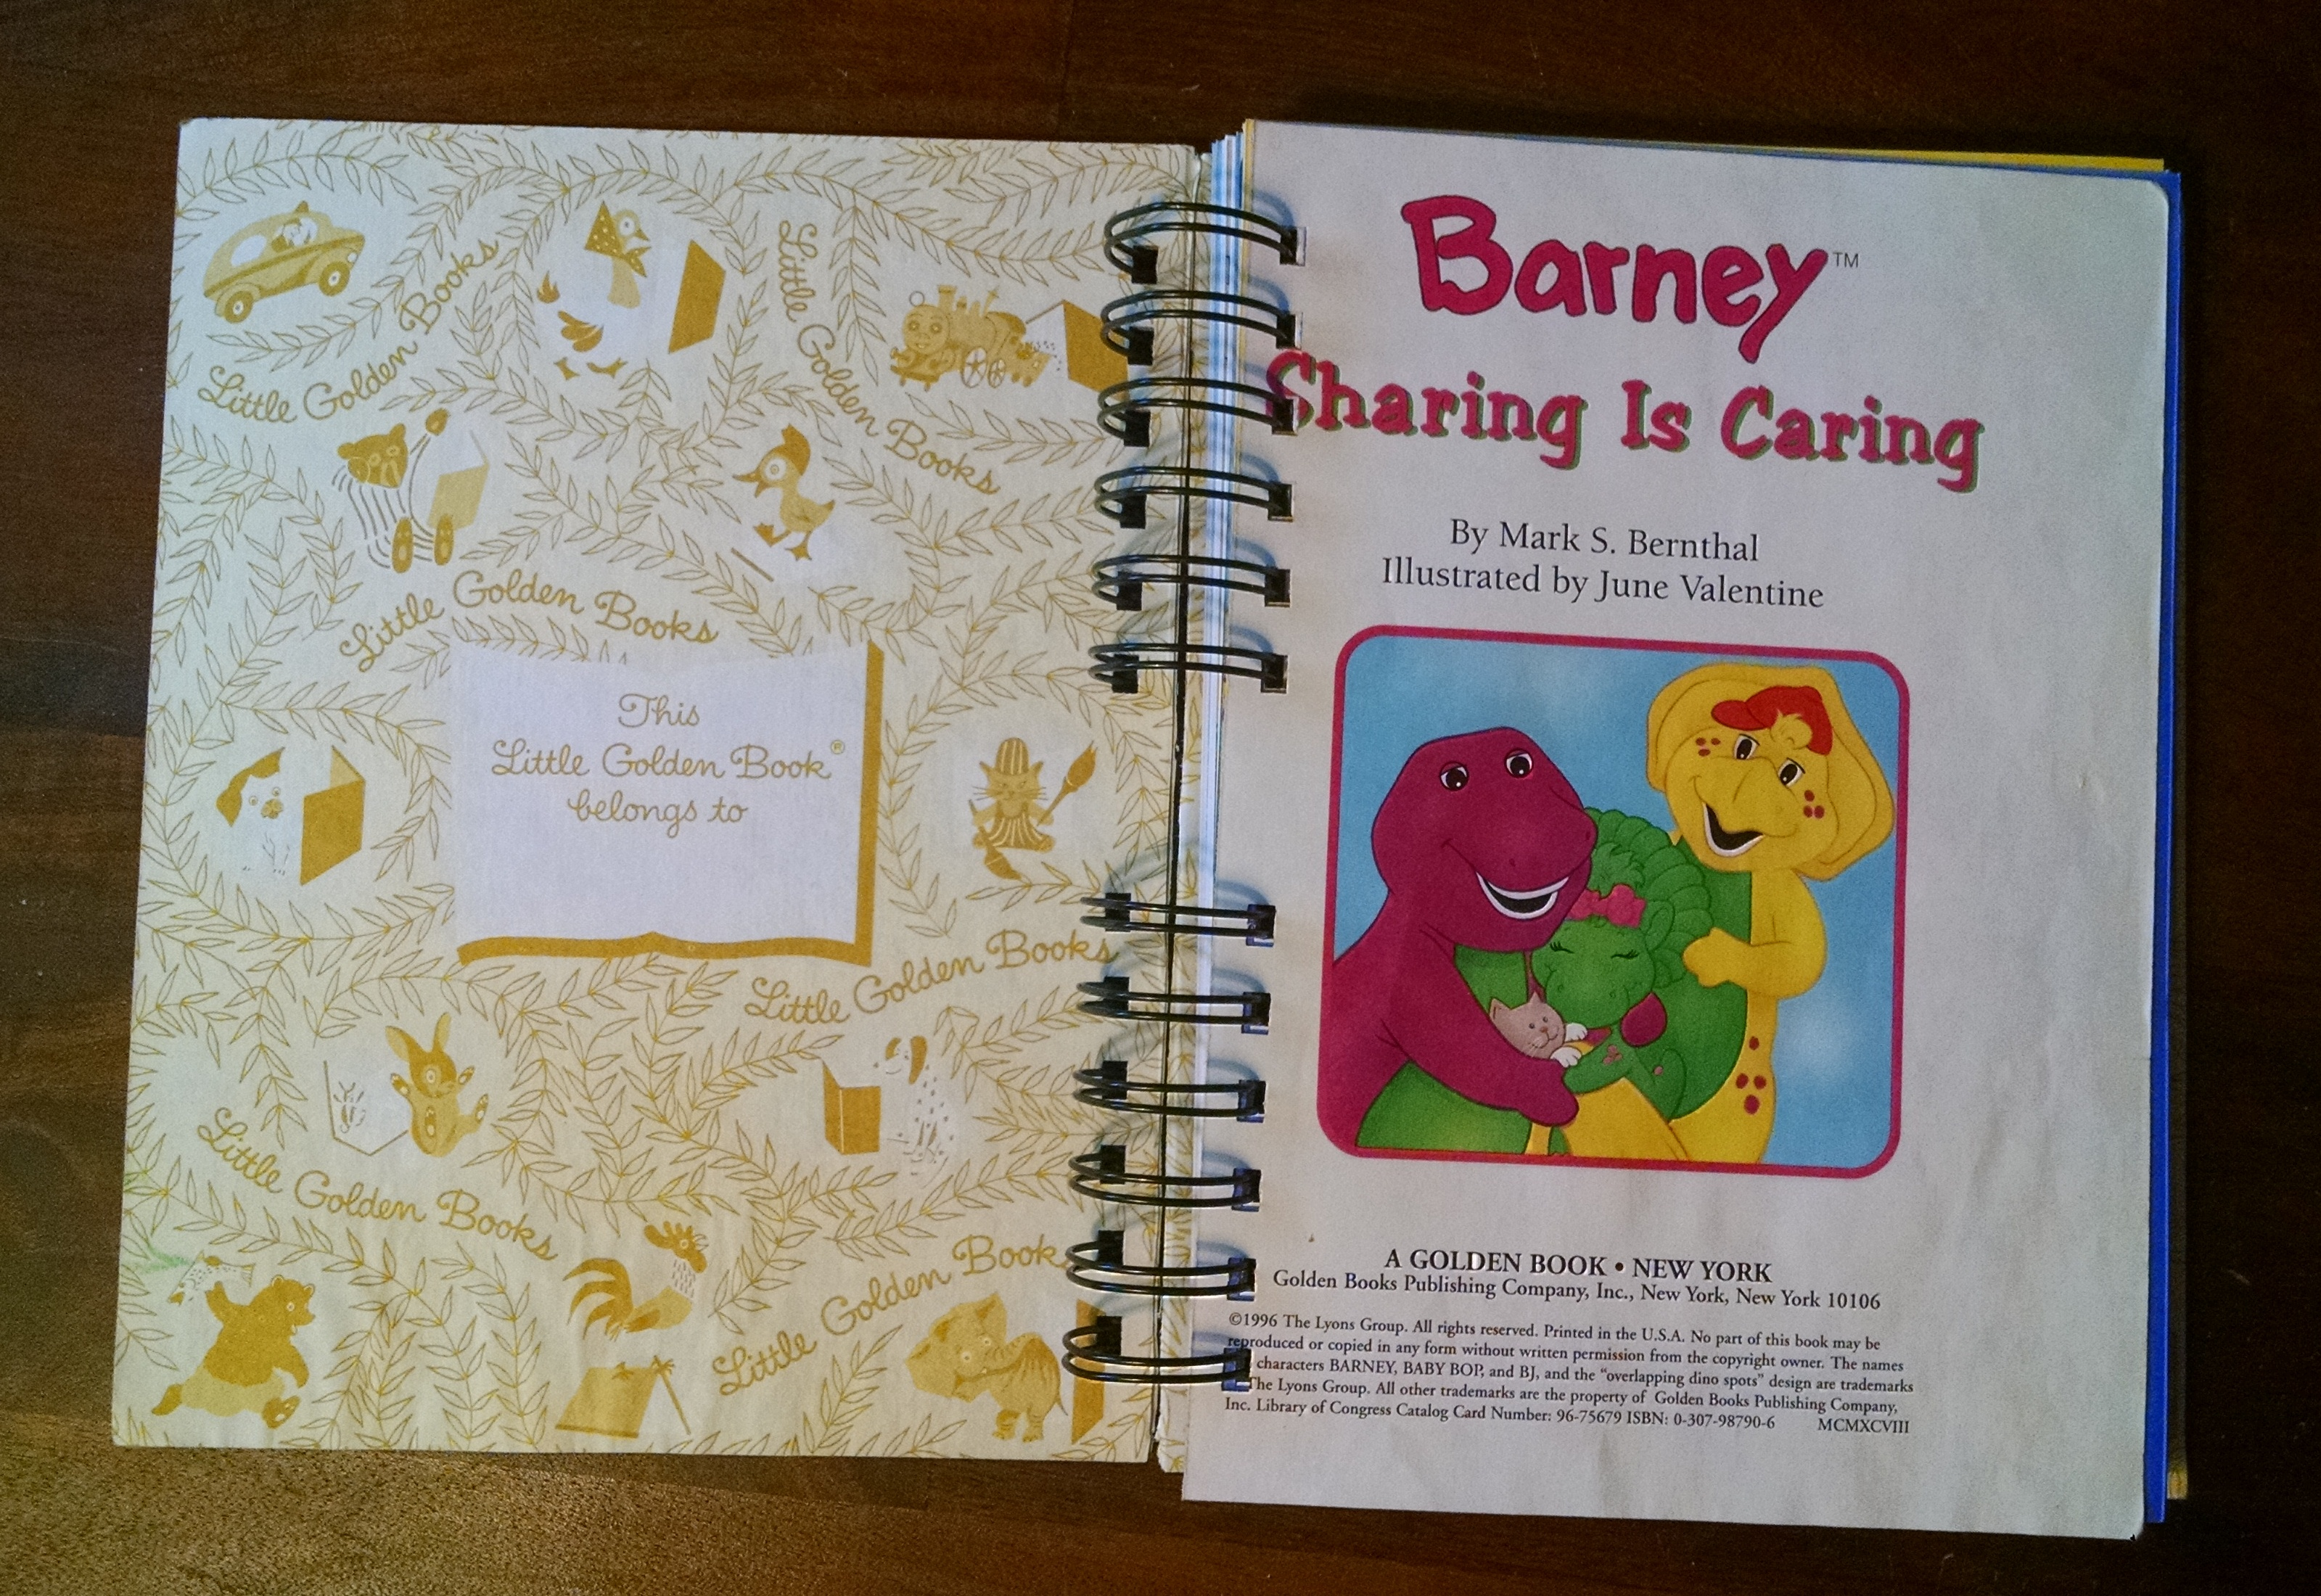 015 Essay Example Sharing And Caring Barney Recycled Little Golden Book Journal Interior Atrs Crafts Activities Toddlers Activity For Kindergarten Application Astoria Formidable Is Grade 3 Class 2 Full